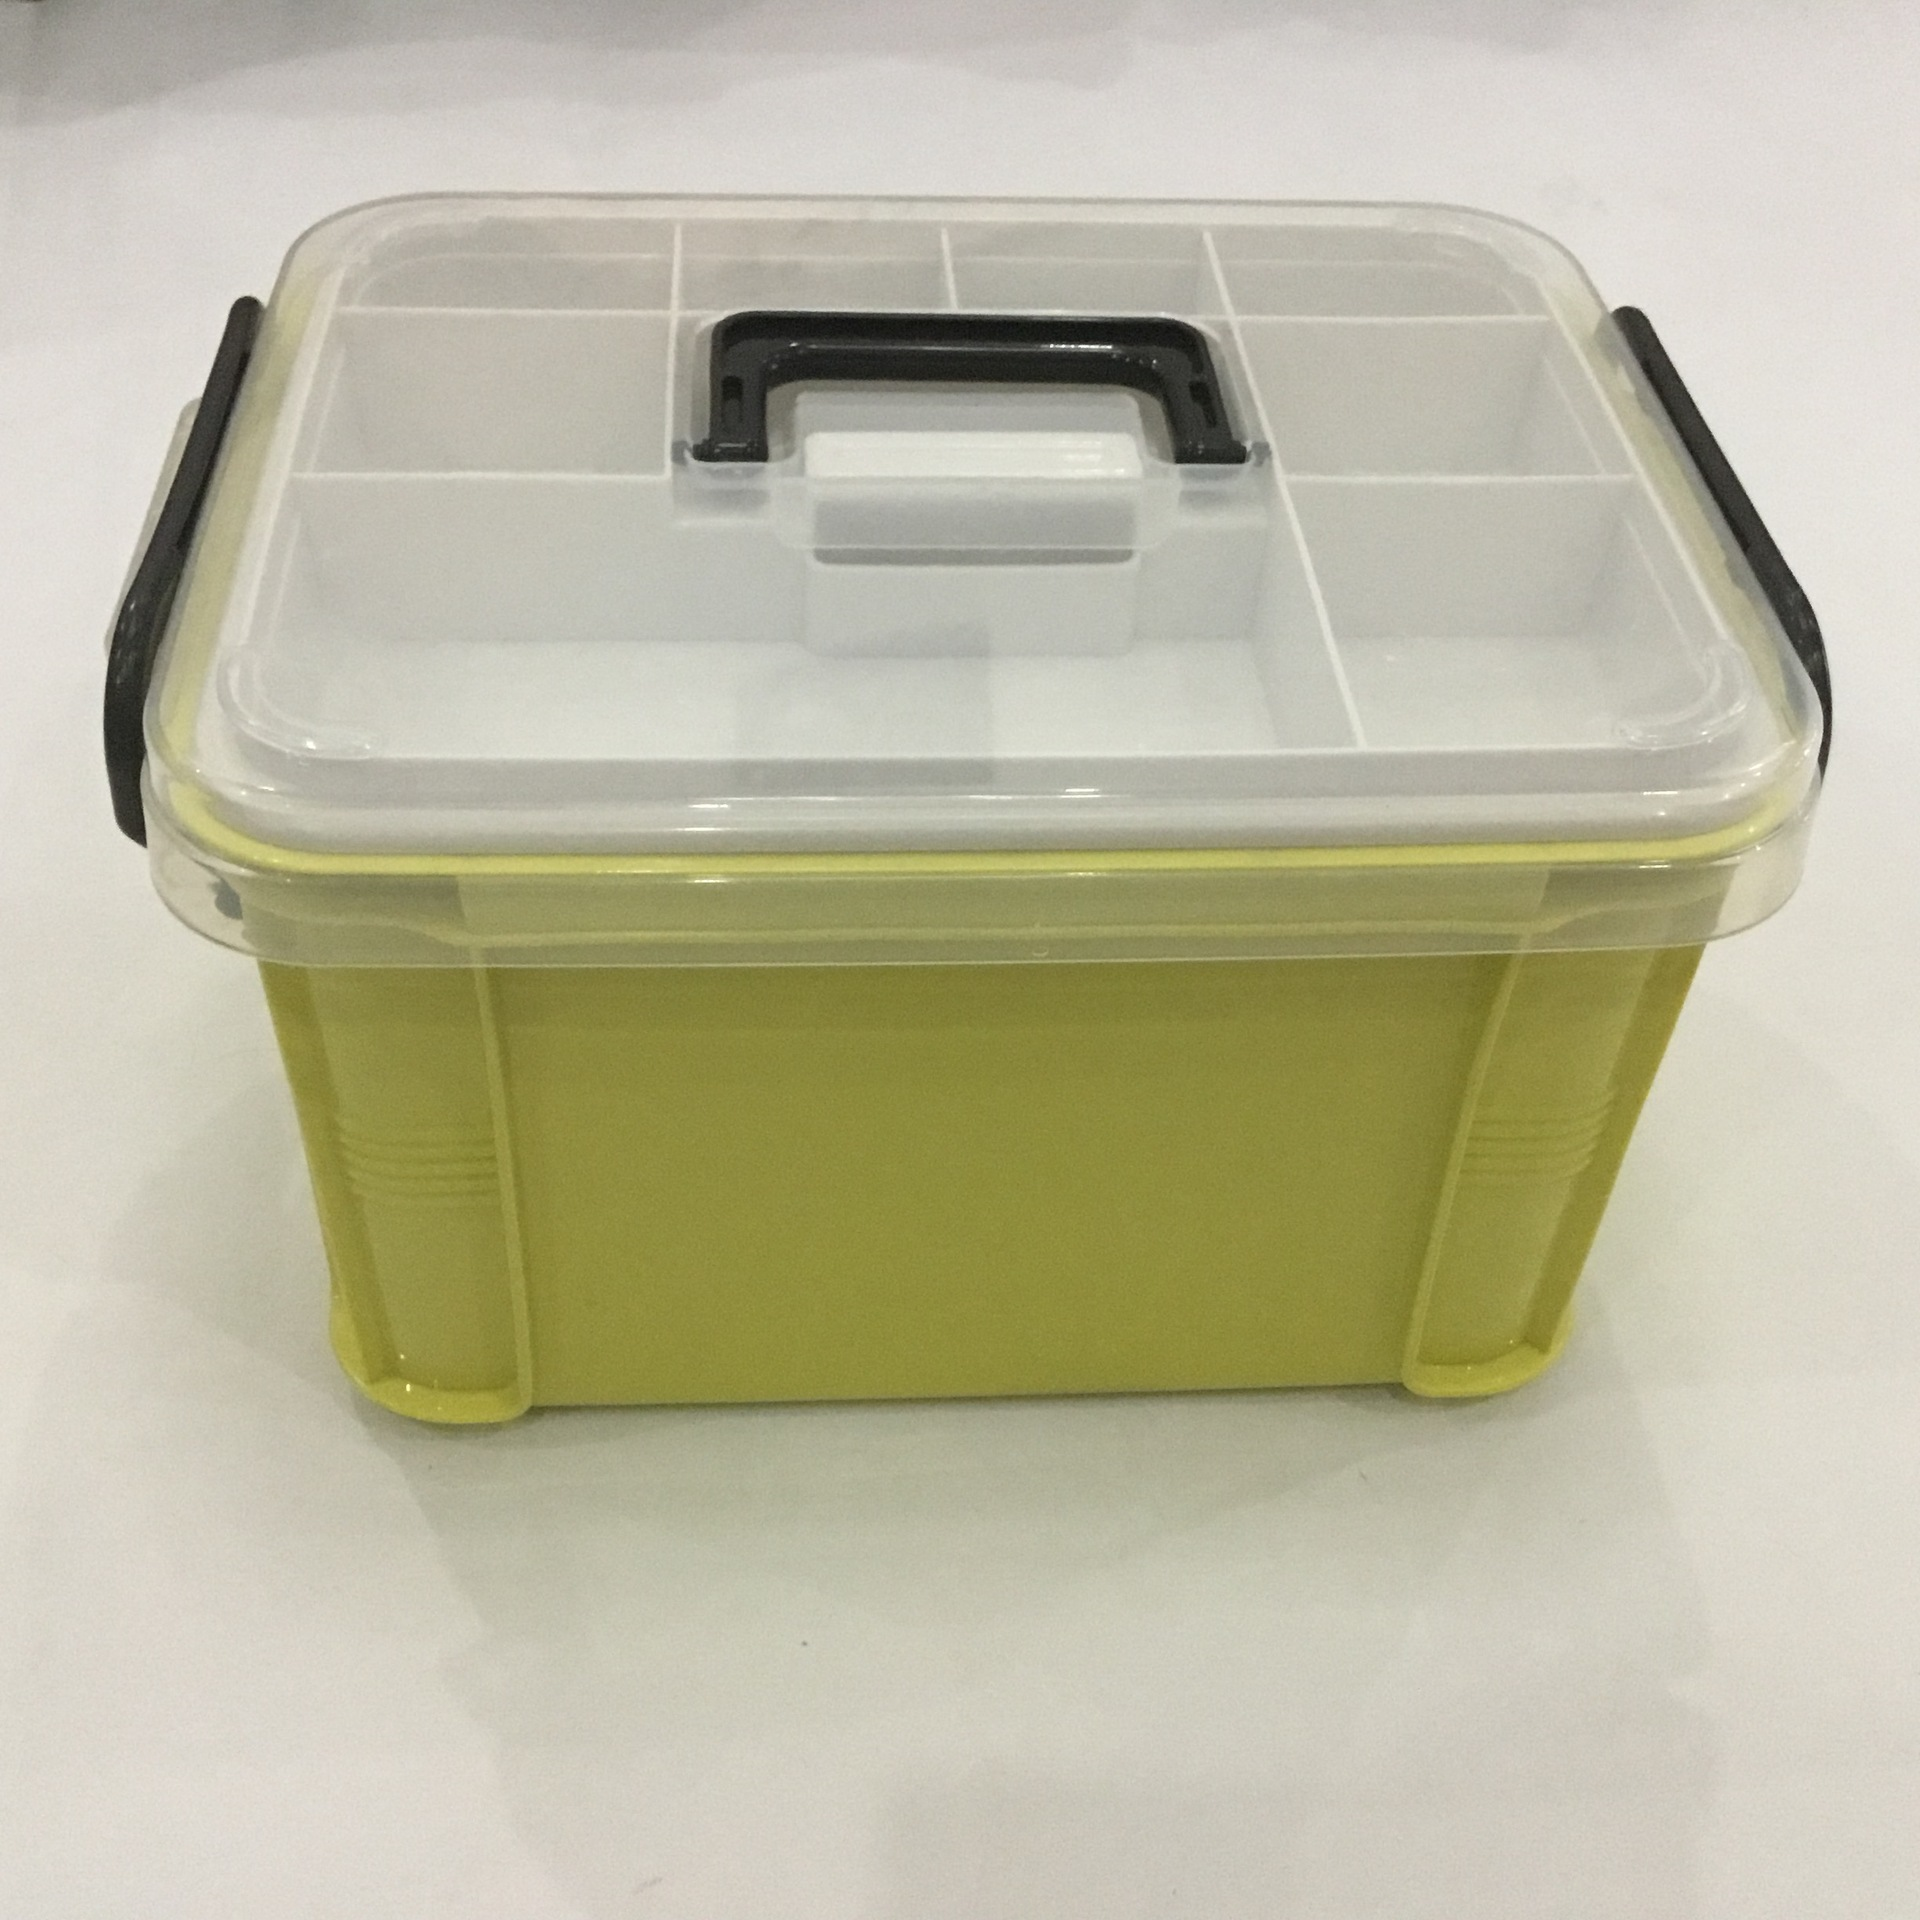 Medical Box Large Medicine Box First Aid Kit Double Layer Medicine Box Hand Chest For Household Indoor 4 Color